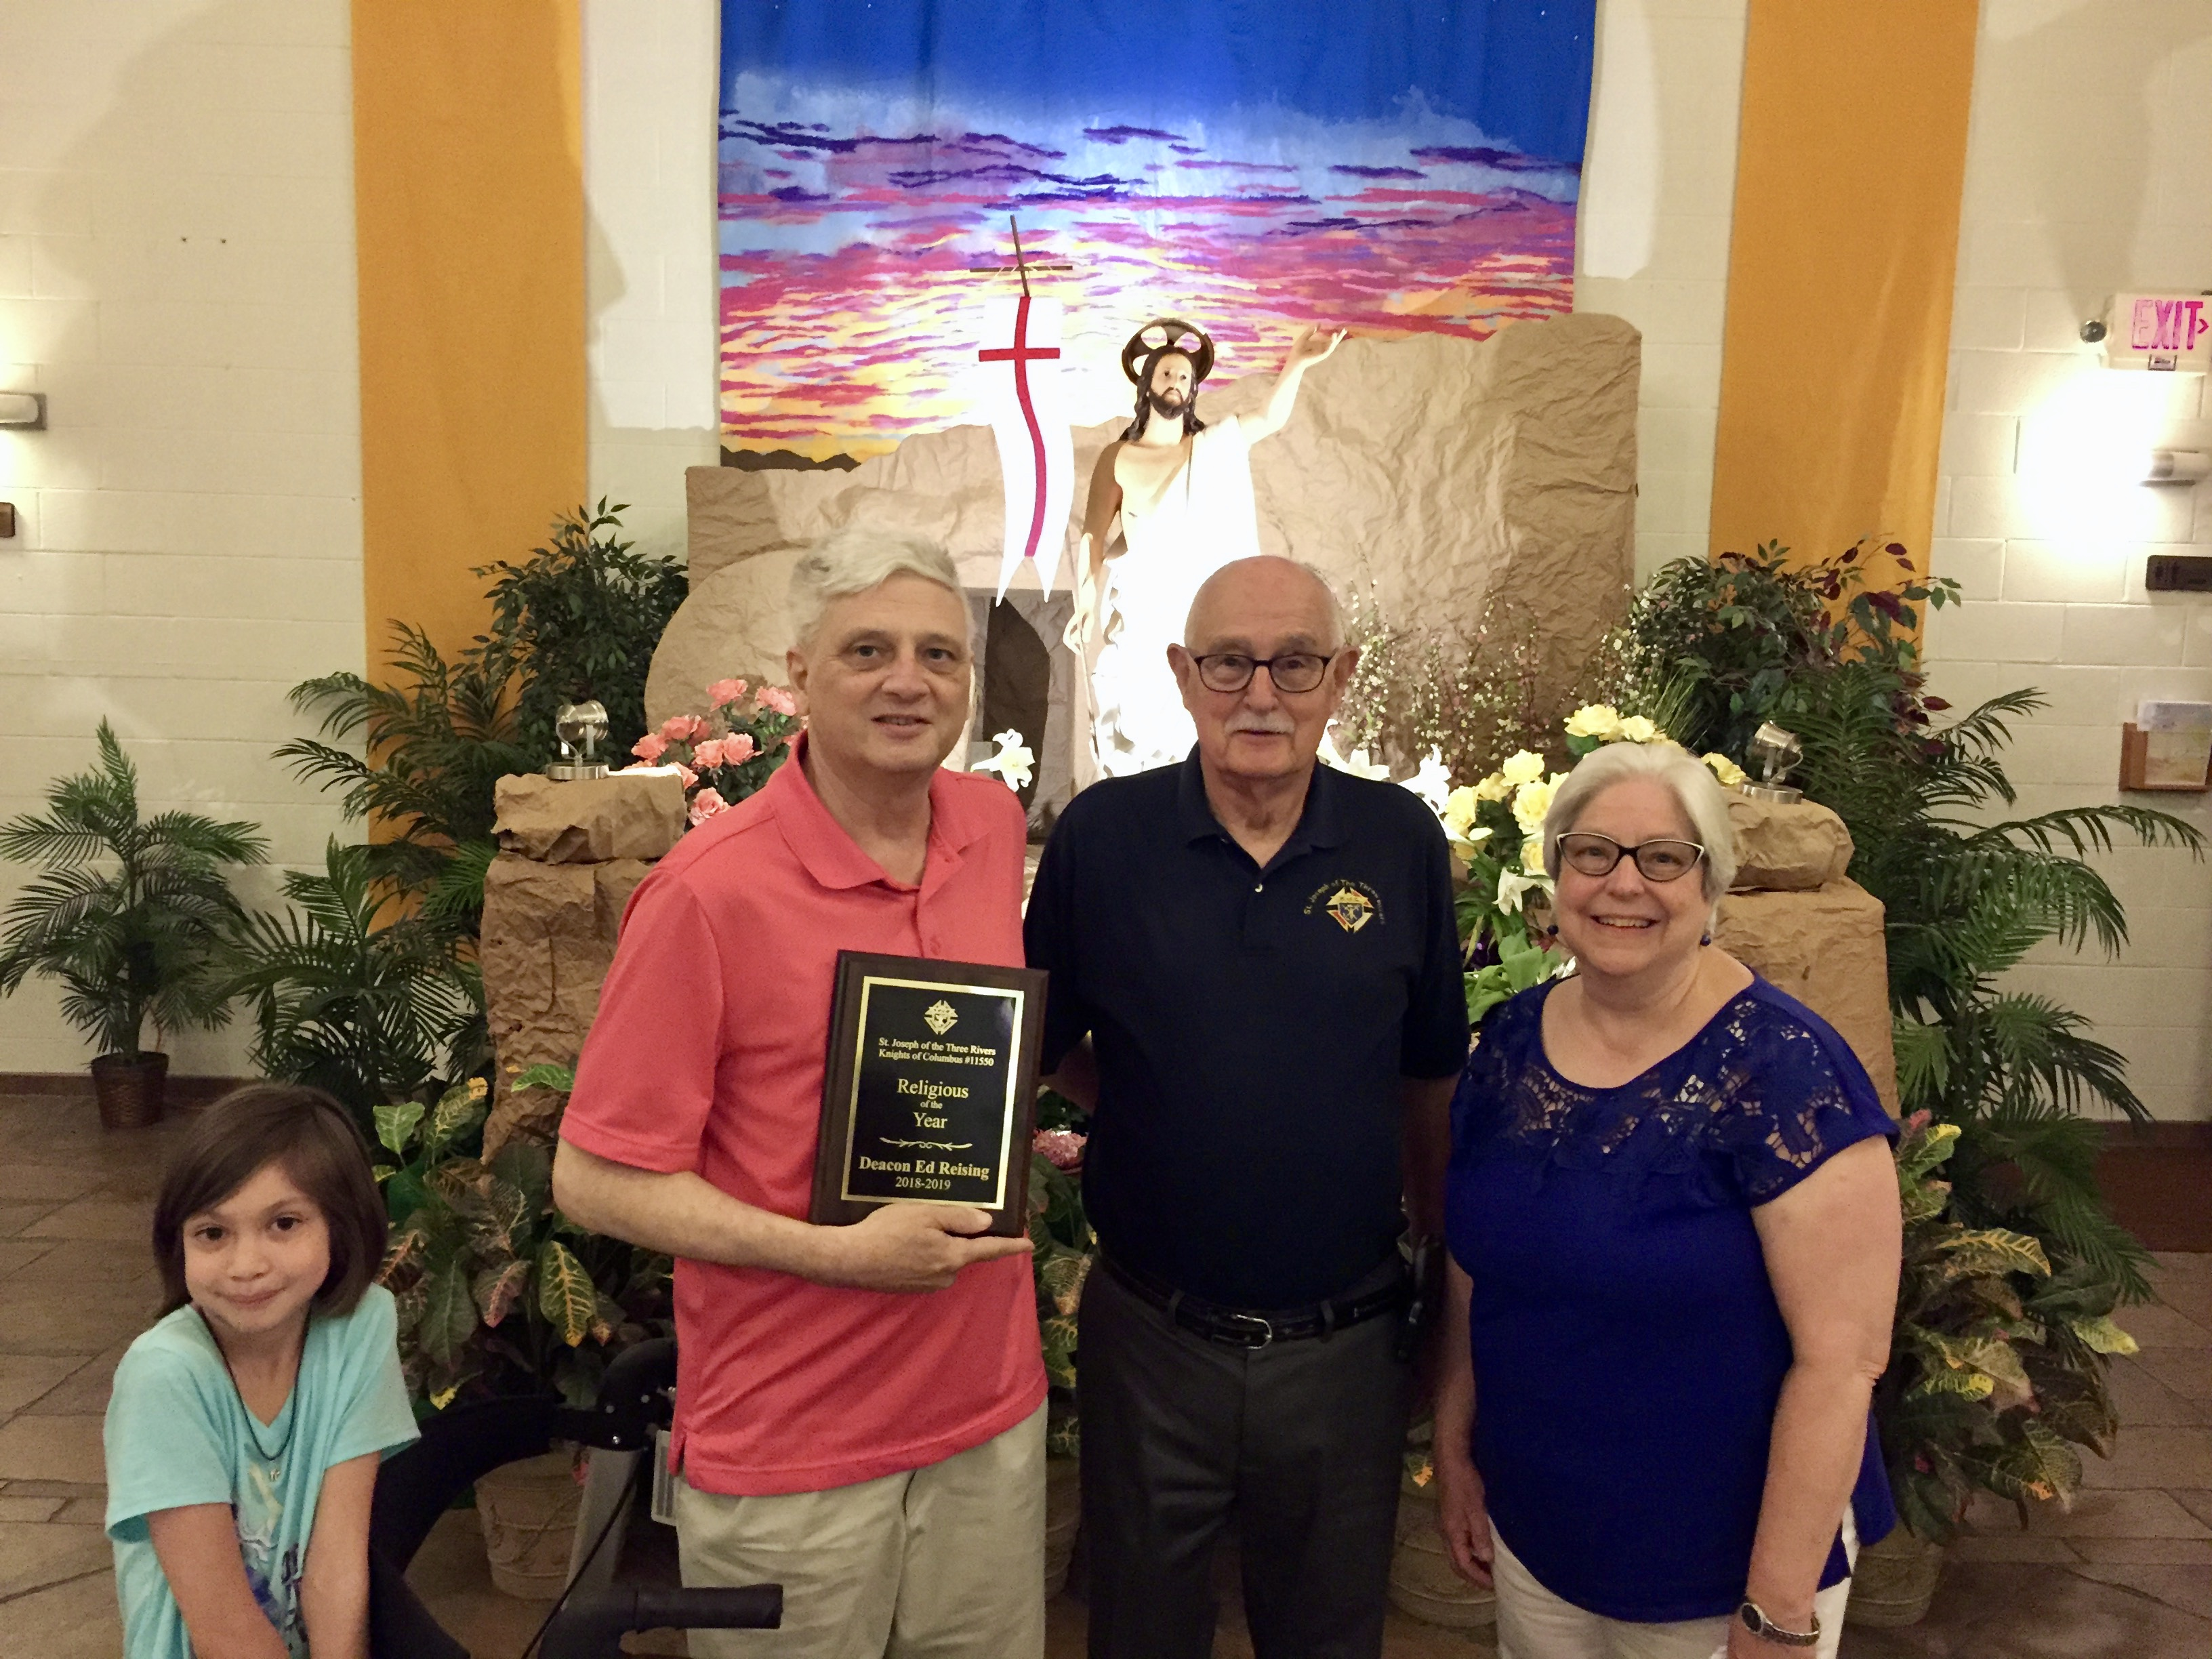 Religious of the Year Deacon Ed Reising